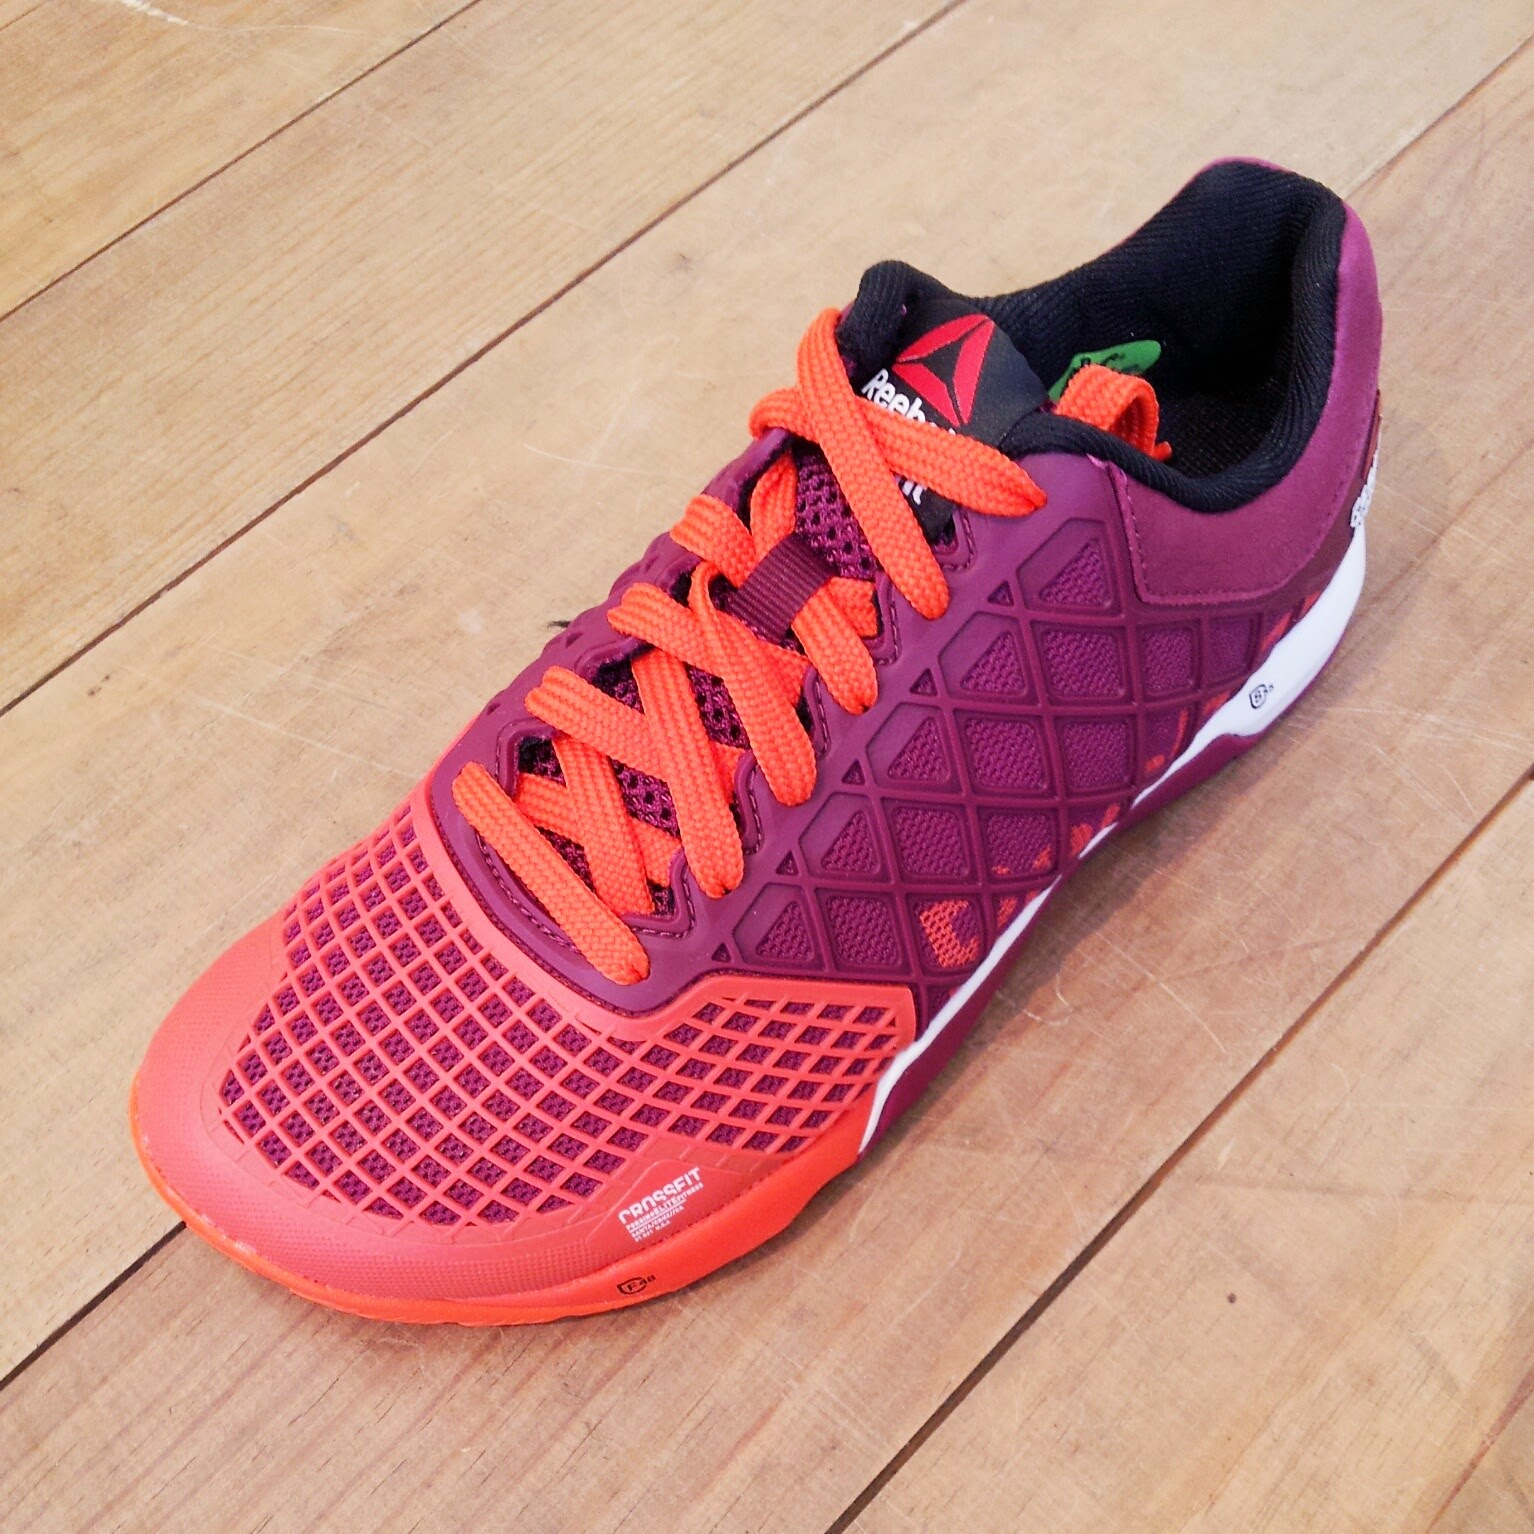 Kobe Shoes Online India